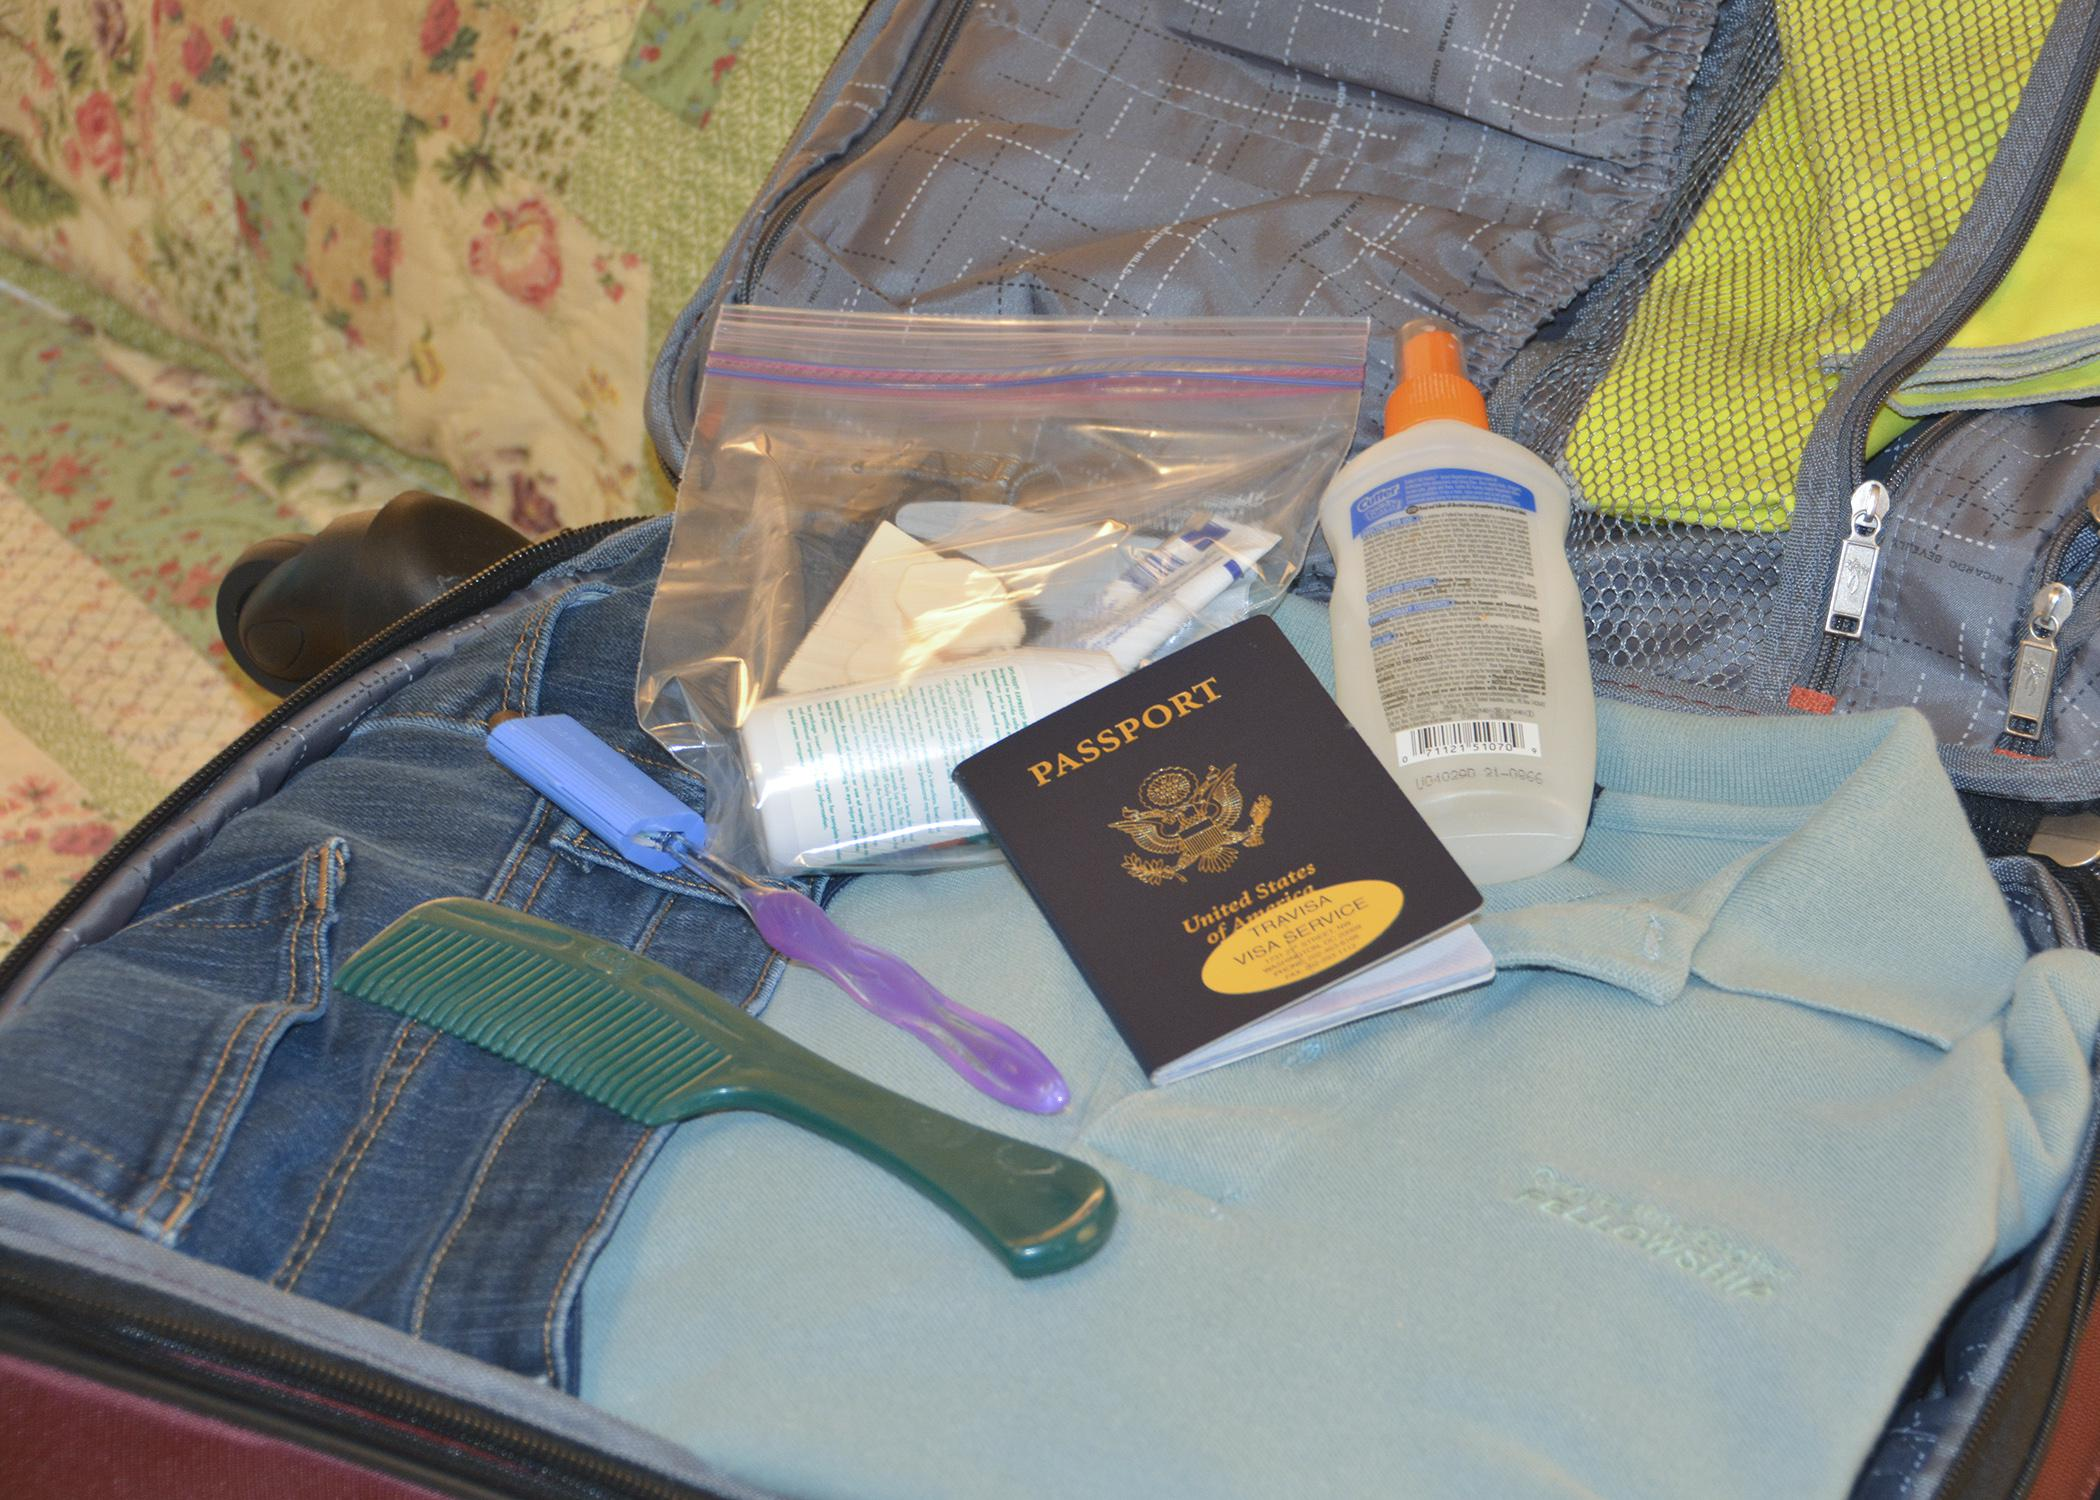 Include insect repellent when packing bags, especially when traveling to tropical or Third World regions. (Photo by MSU Ag Communications/Linda Breazeale)